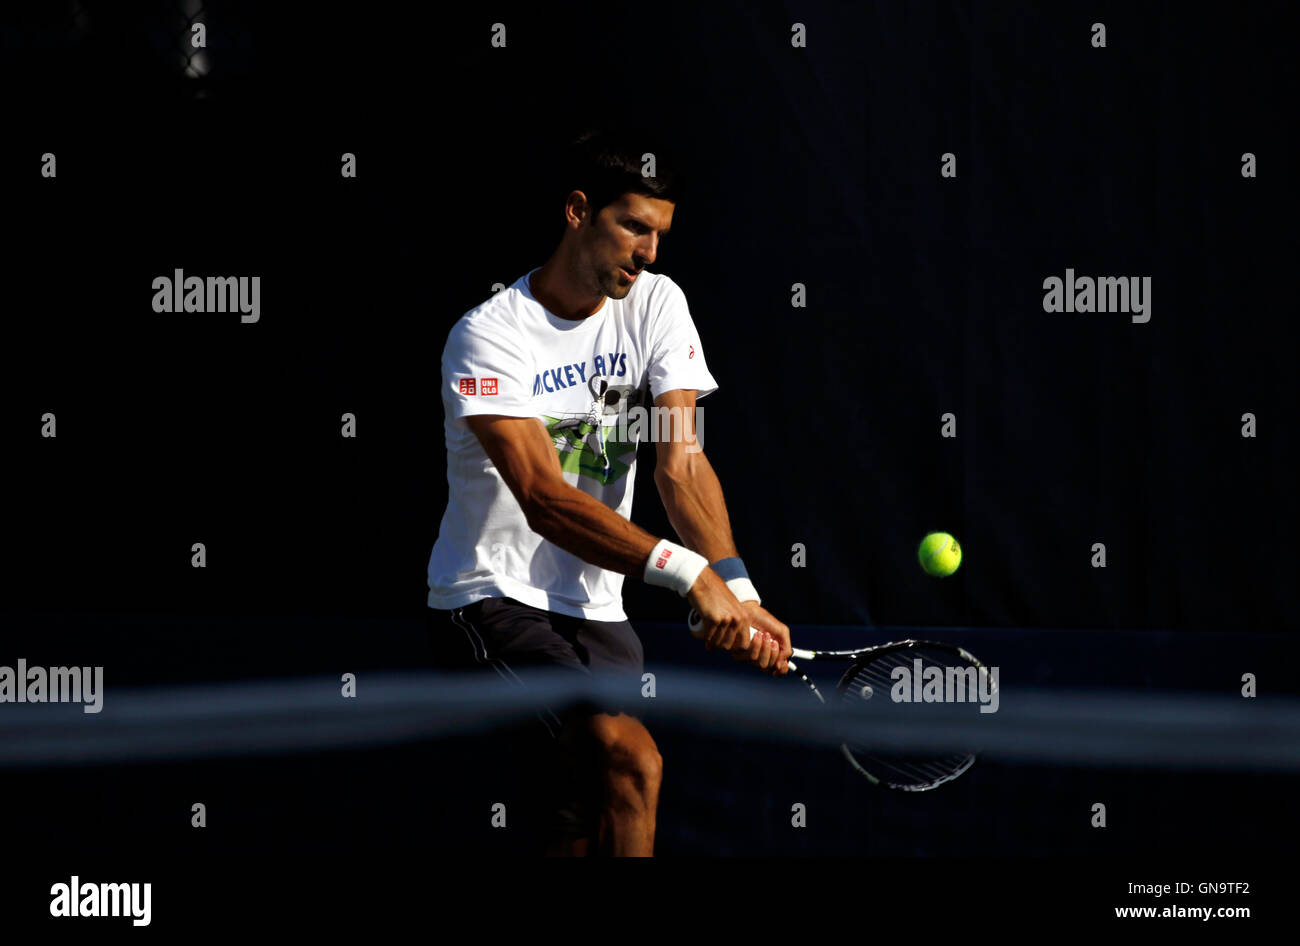 New York, United States. 28th Aug, 2016. Novak Djokovic during a practice session Sunday, August 28th, at the National - Stock Image